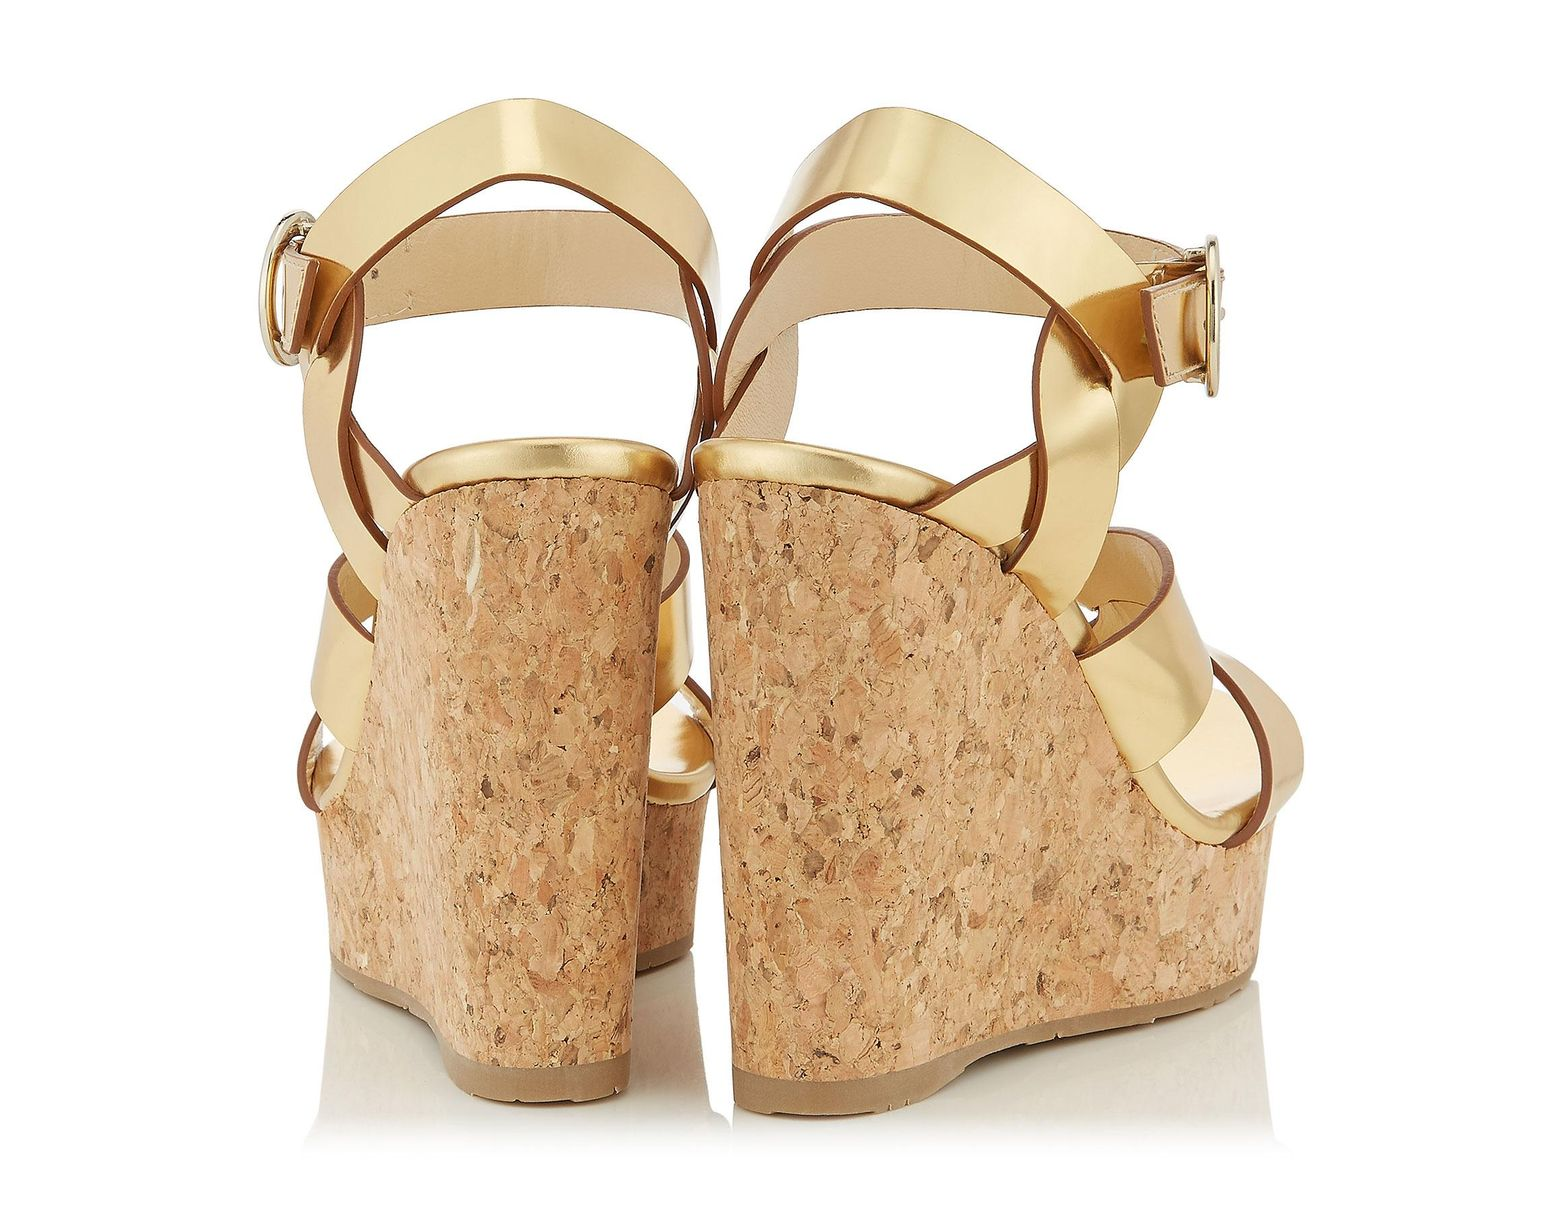 88a6c97a79 Jimmy Choo Aleili 120 Sandals in Metallic - Lyst